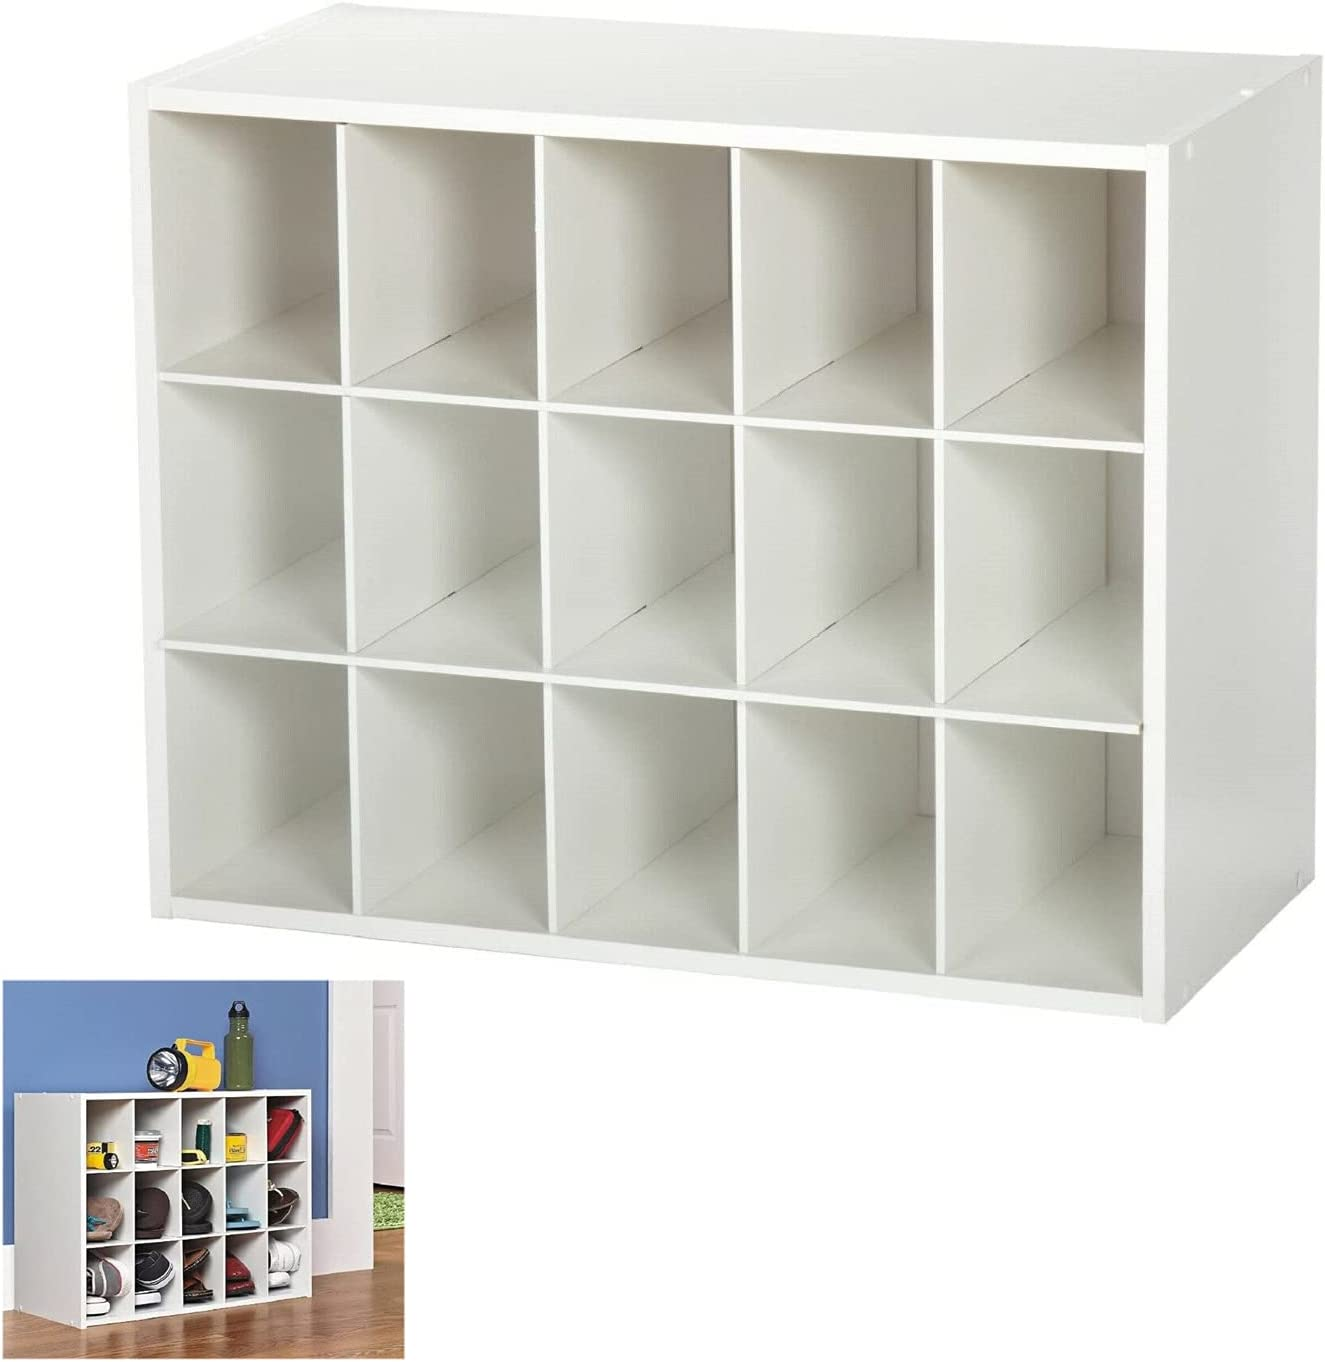 White 15 Cube Unit Max 50% OFF Shoes Fixed price for sale Cabinet Stackab Storage Shelf organizer